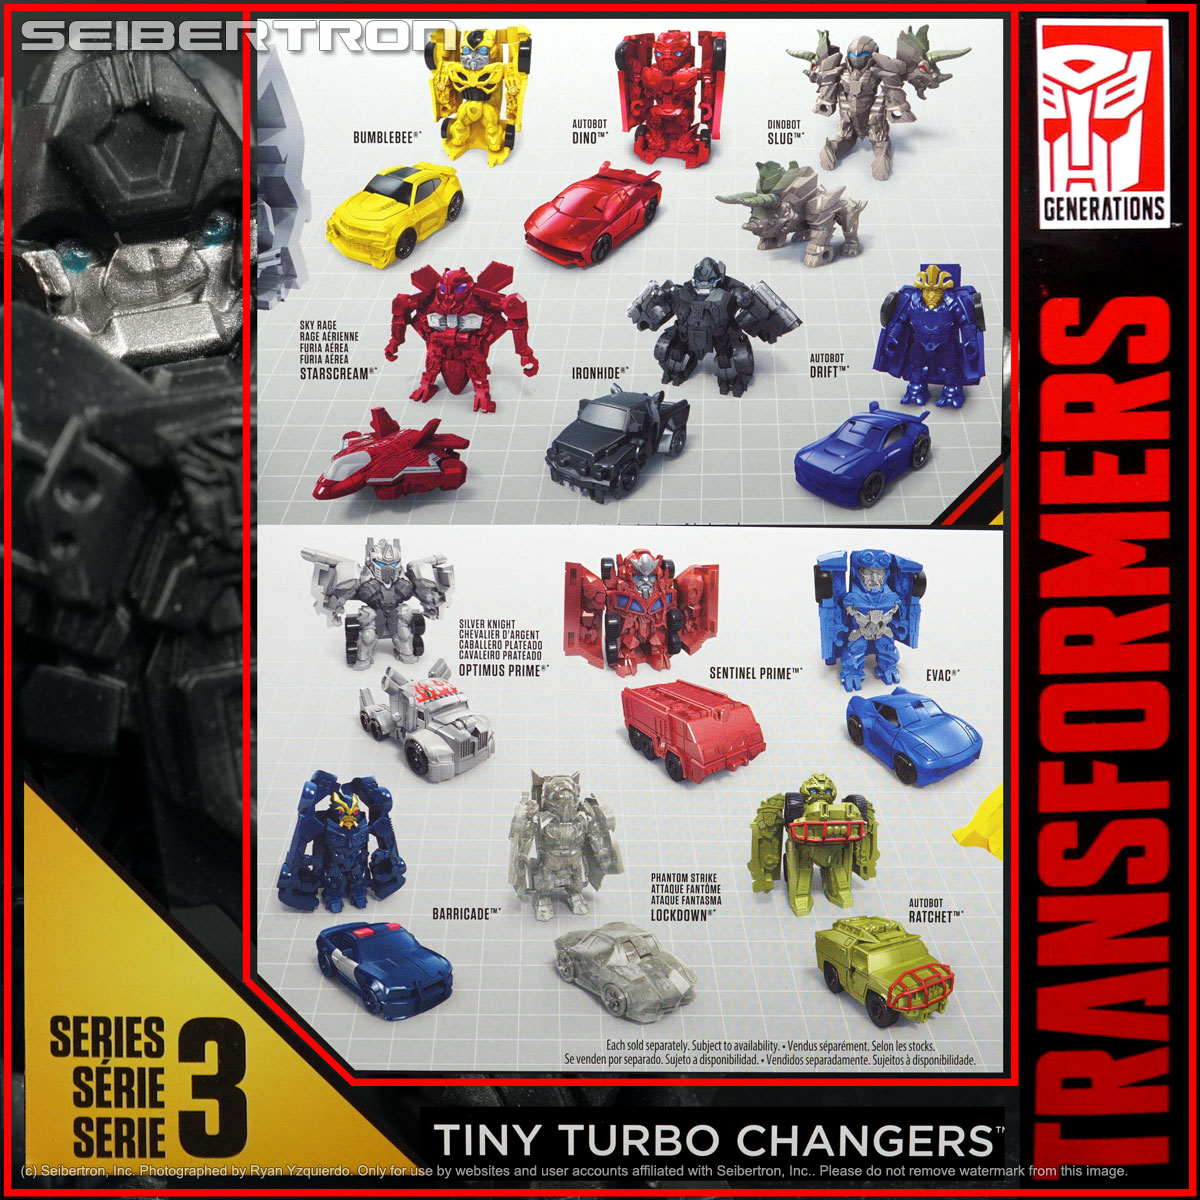 Series 3 BARRICADE Transformers Tiny Turbo Changers Movie